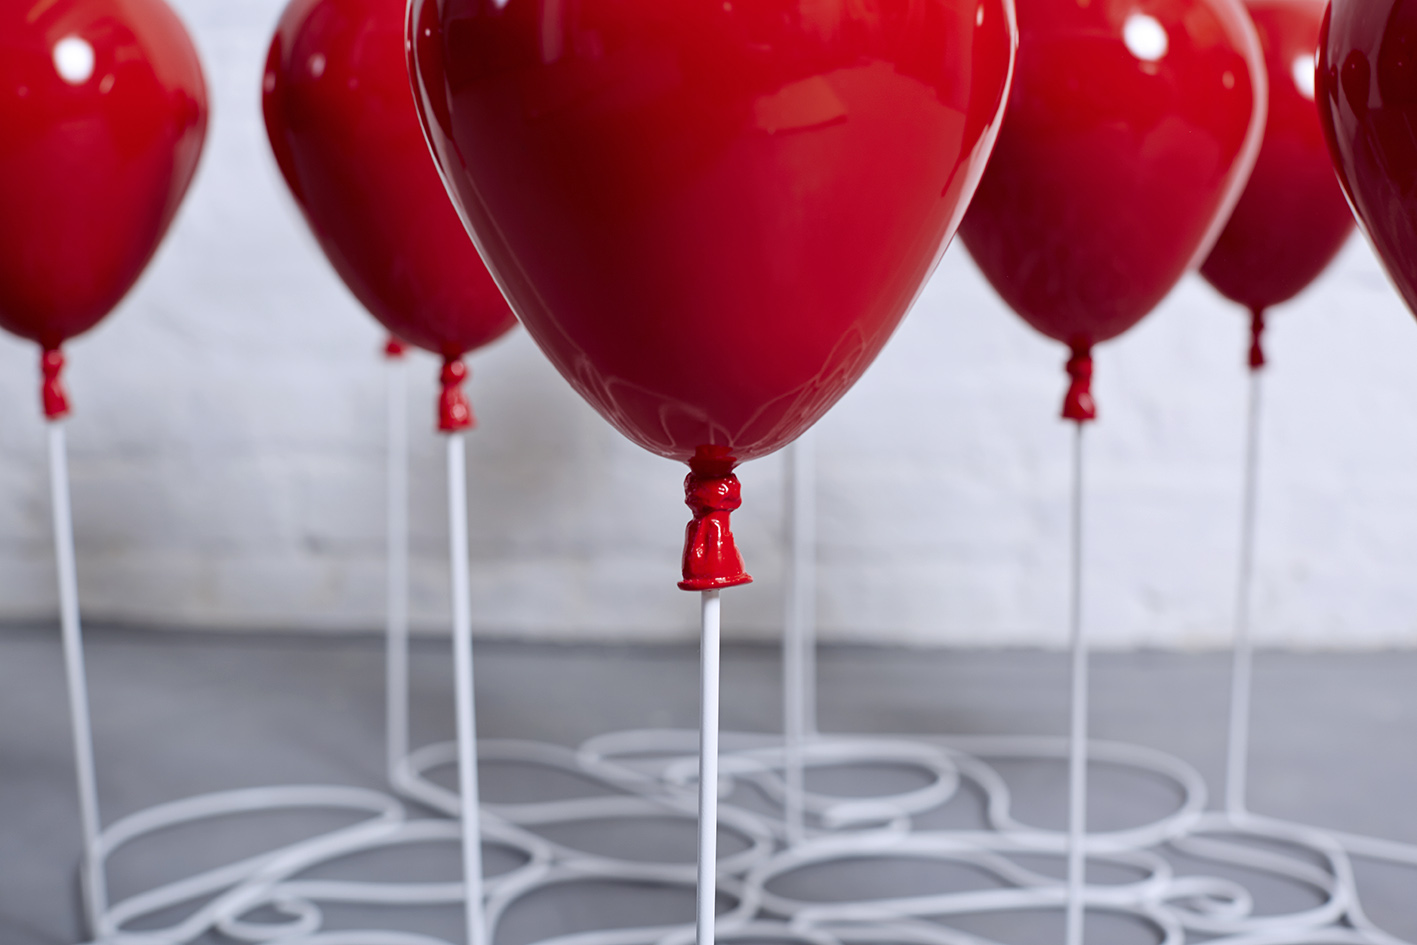 A Coffee Table Made Out Of Glass Based On 11 Helium Balloons Art Sheep